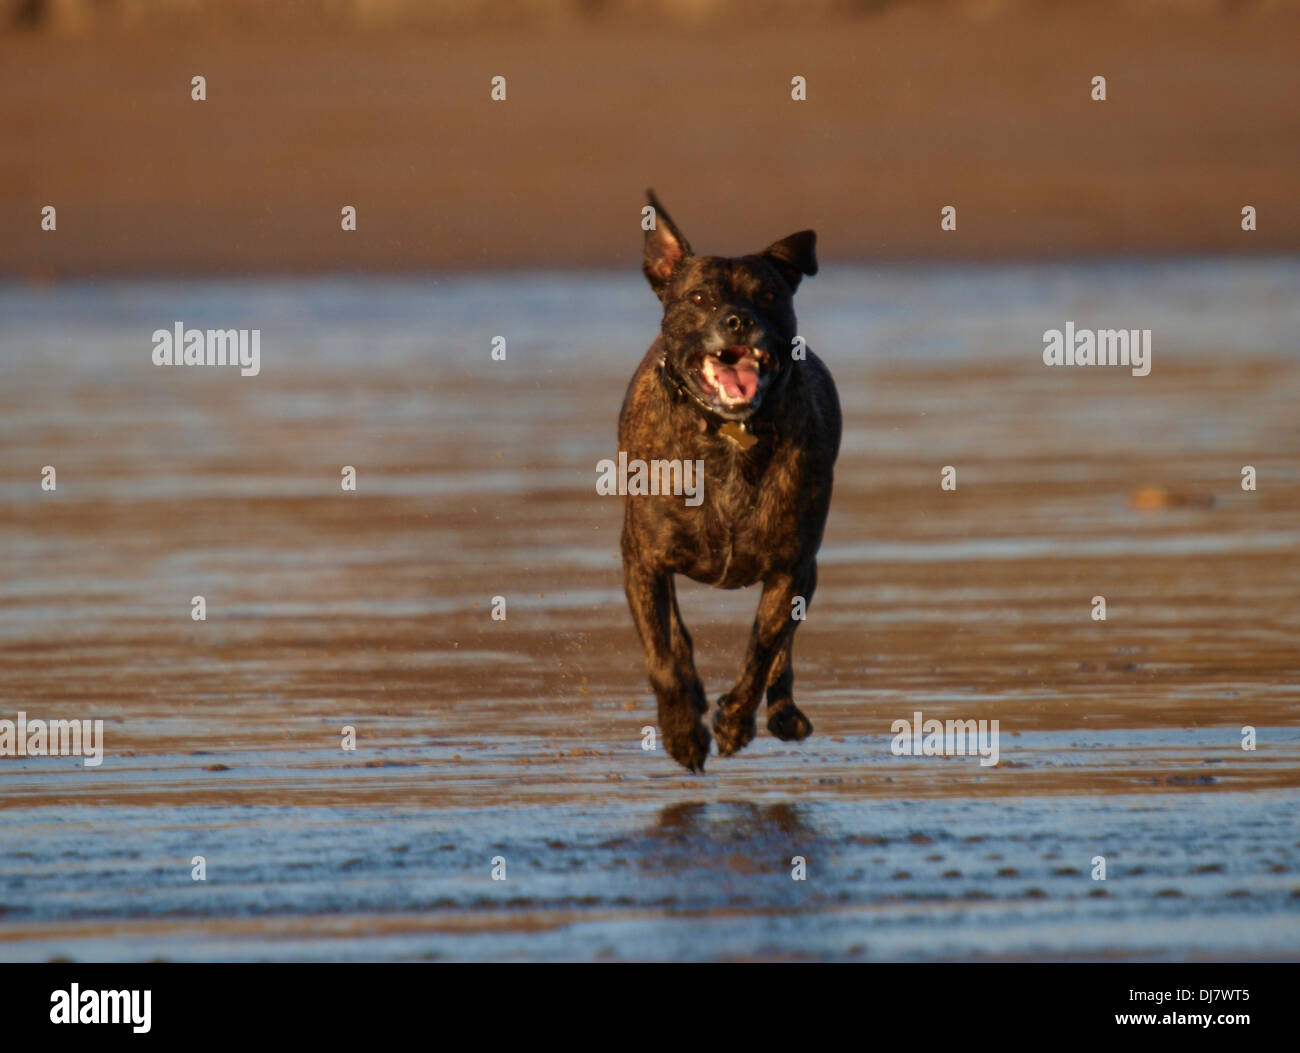 Brindle Staffordshire Bull Terrier running on the beach, Bude, Cornwall, UK - Stock Image